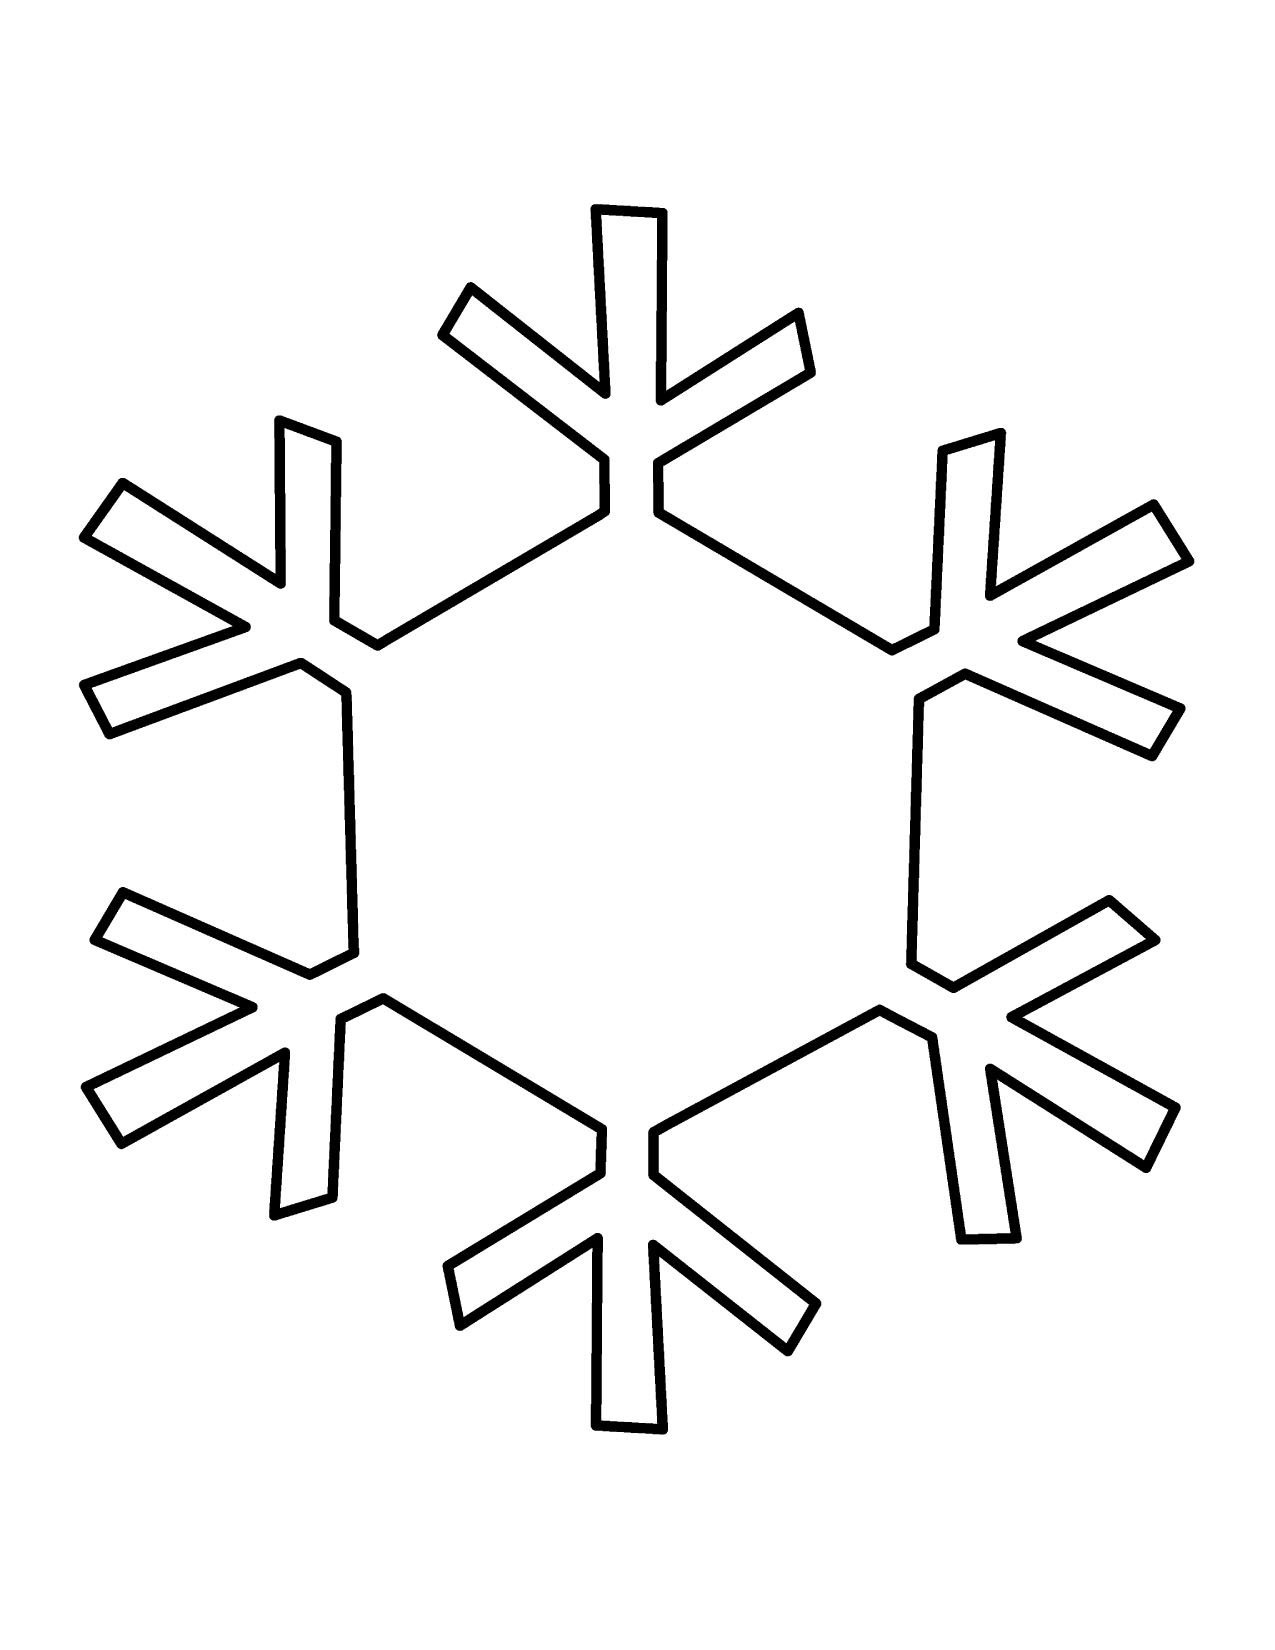 Simple snowflake clipart free images 2